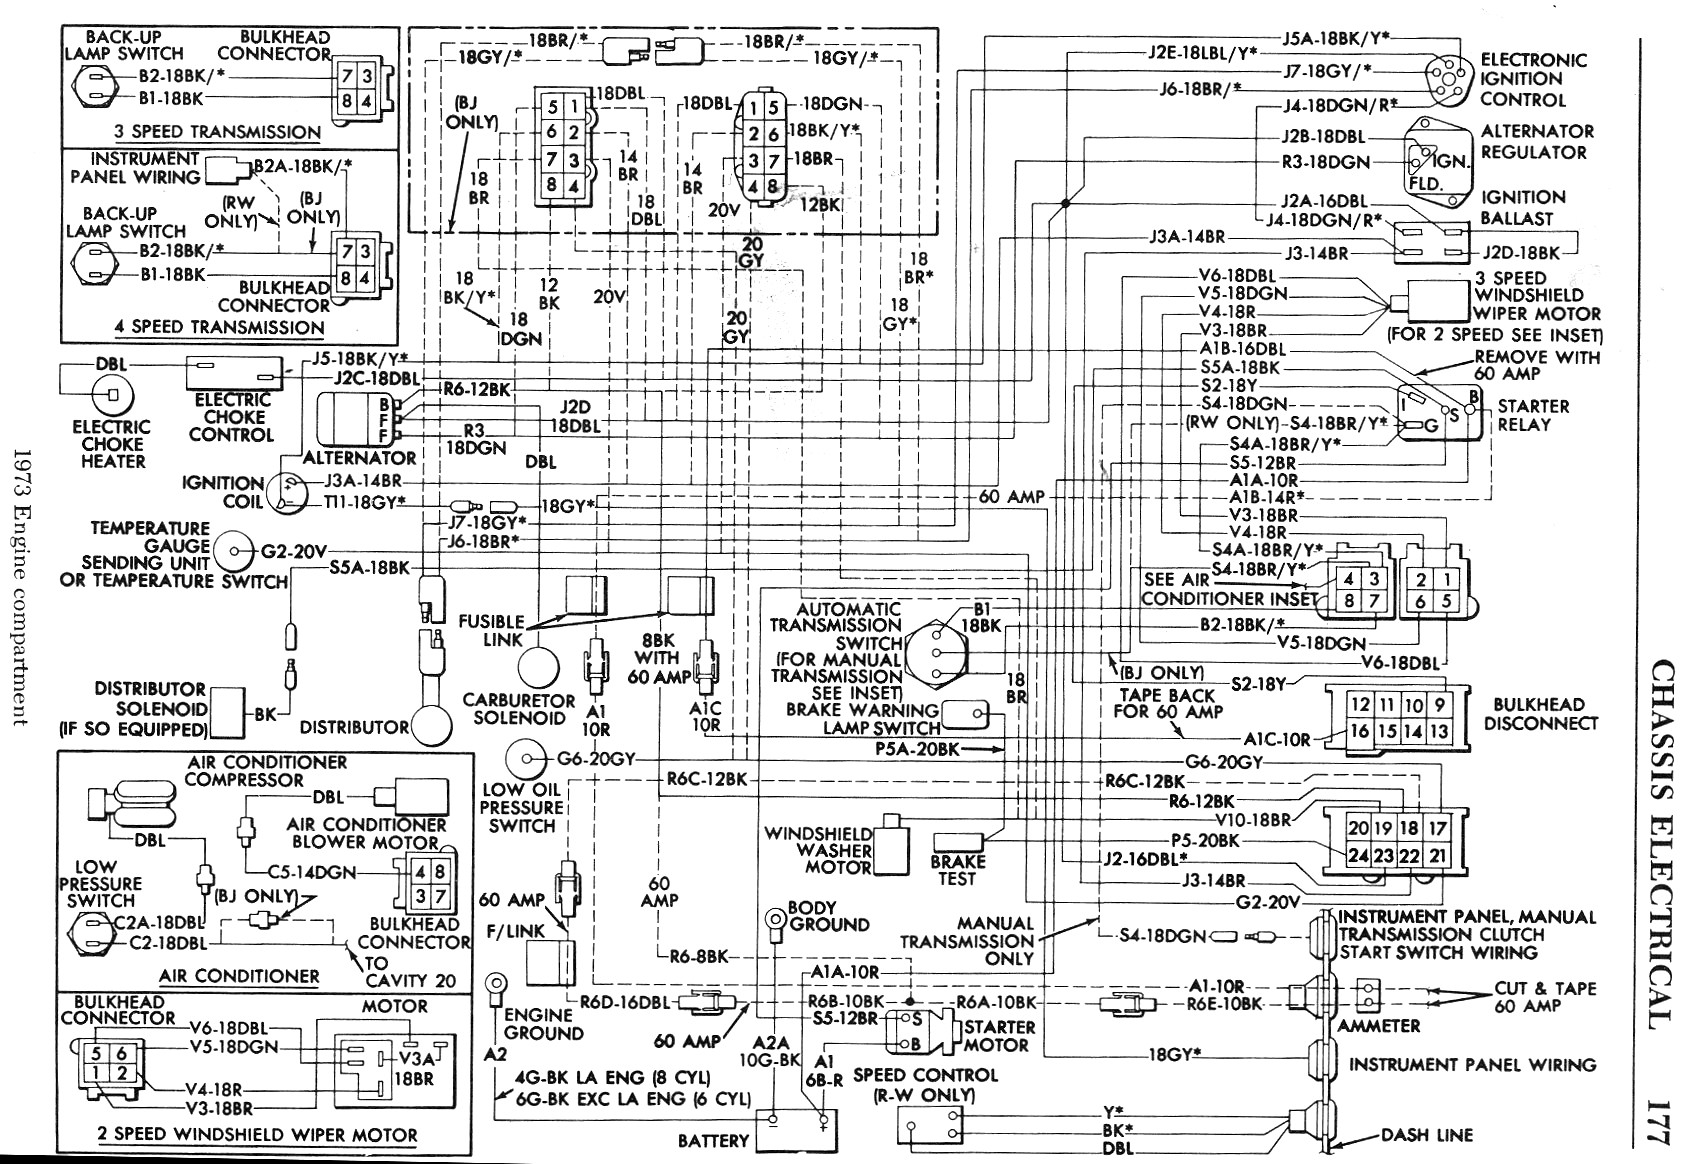 wiring diagram 68 imperial manual e bookwiring diagram 1973 chrysler imperial get free image about wiring